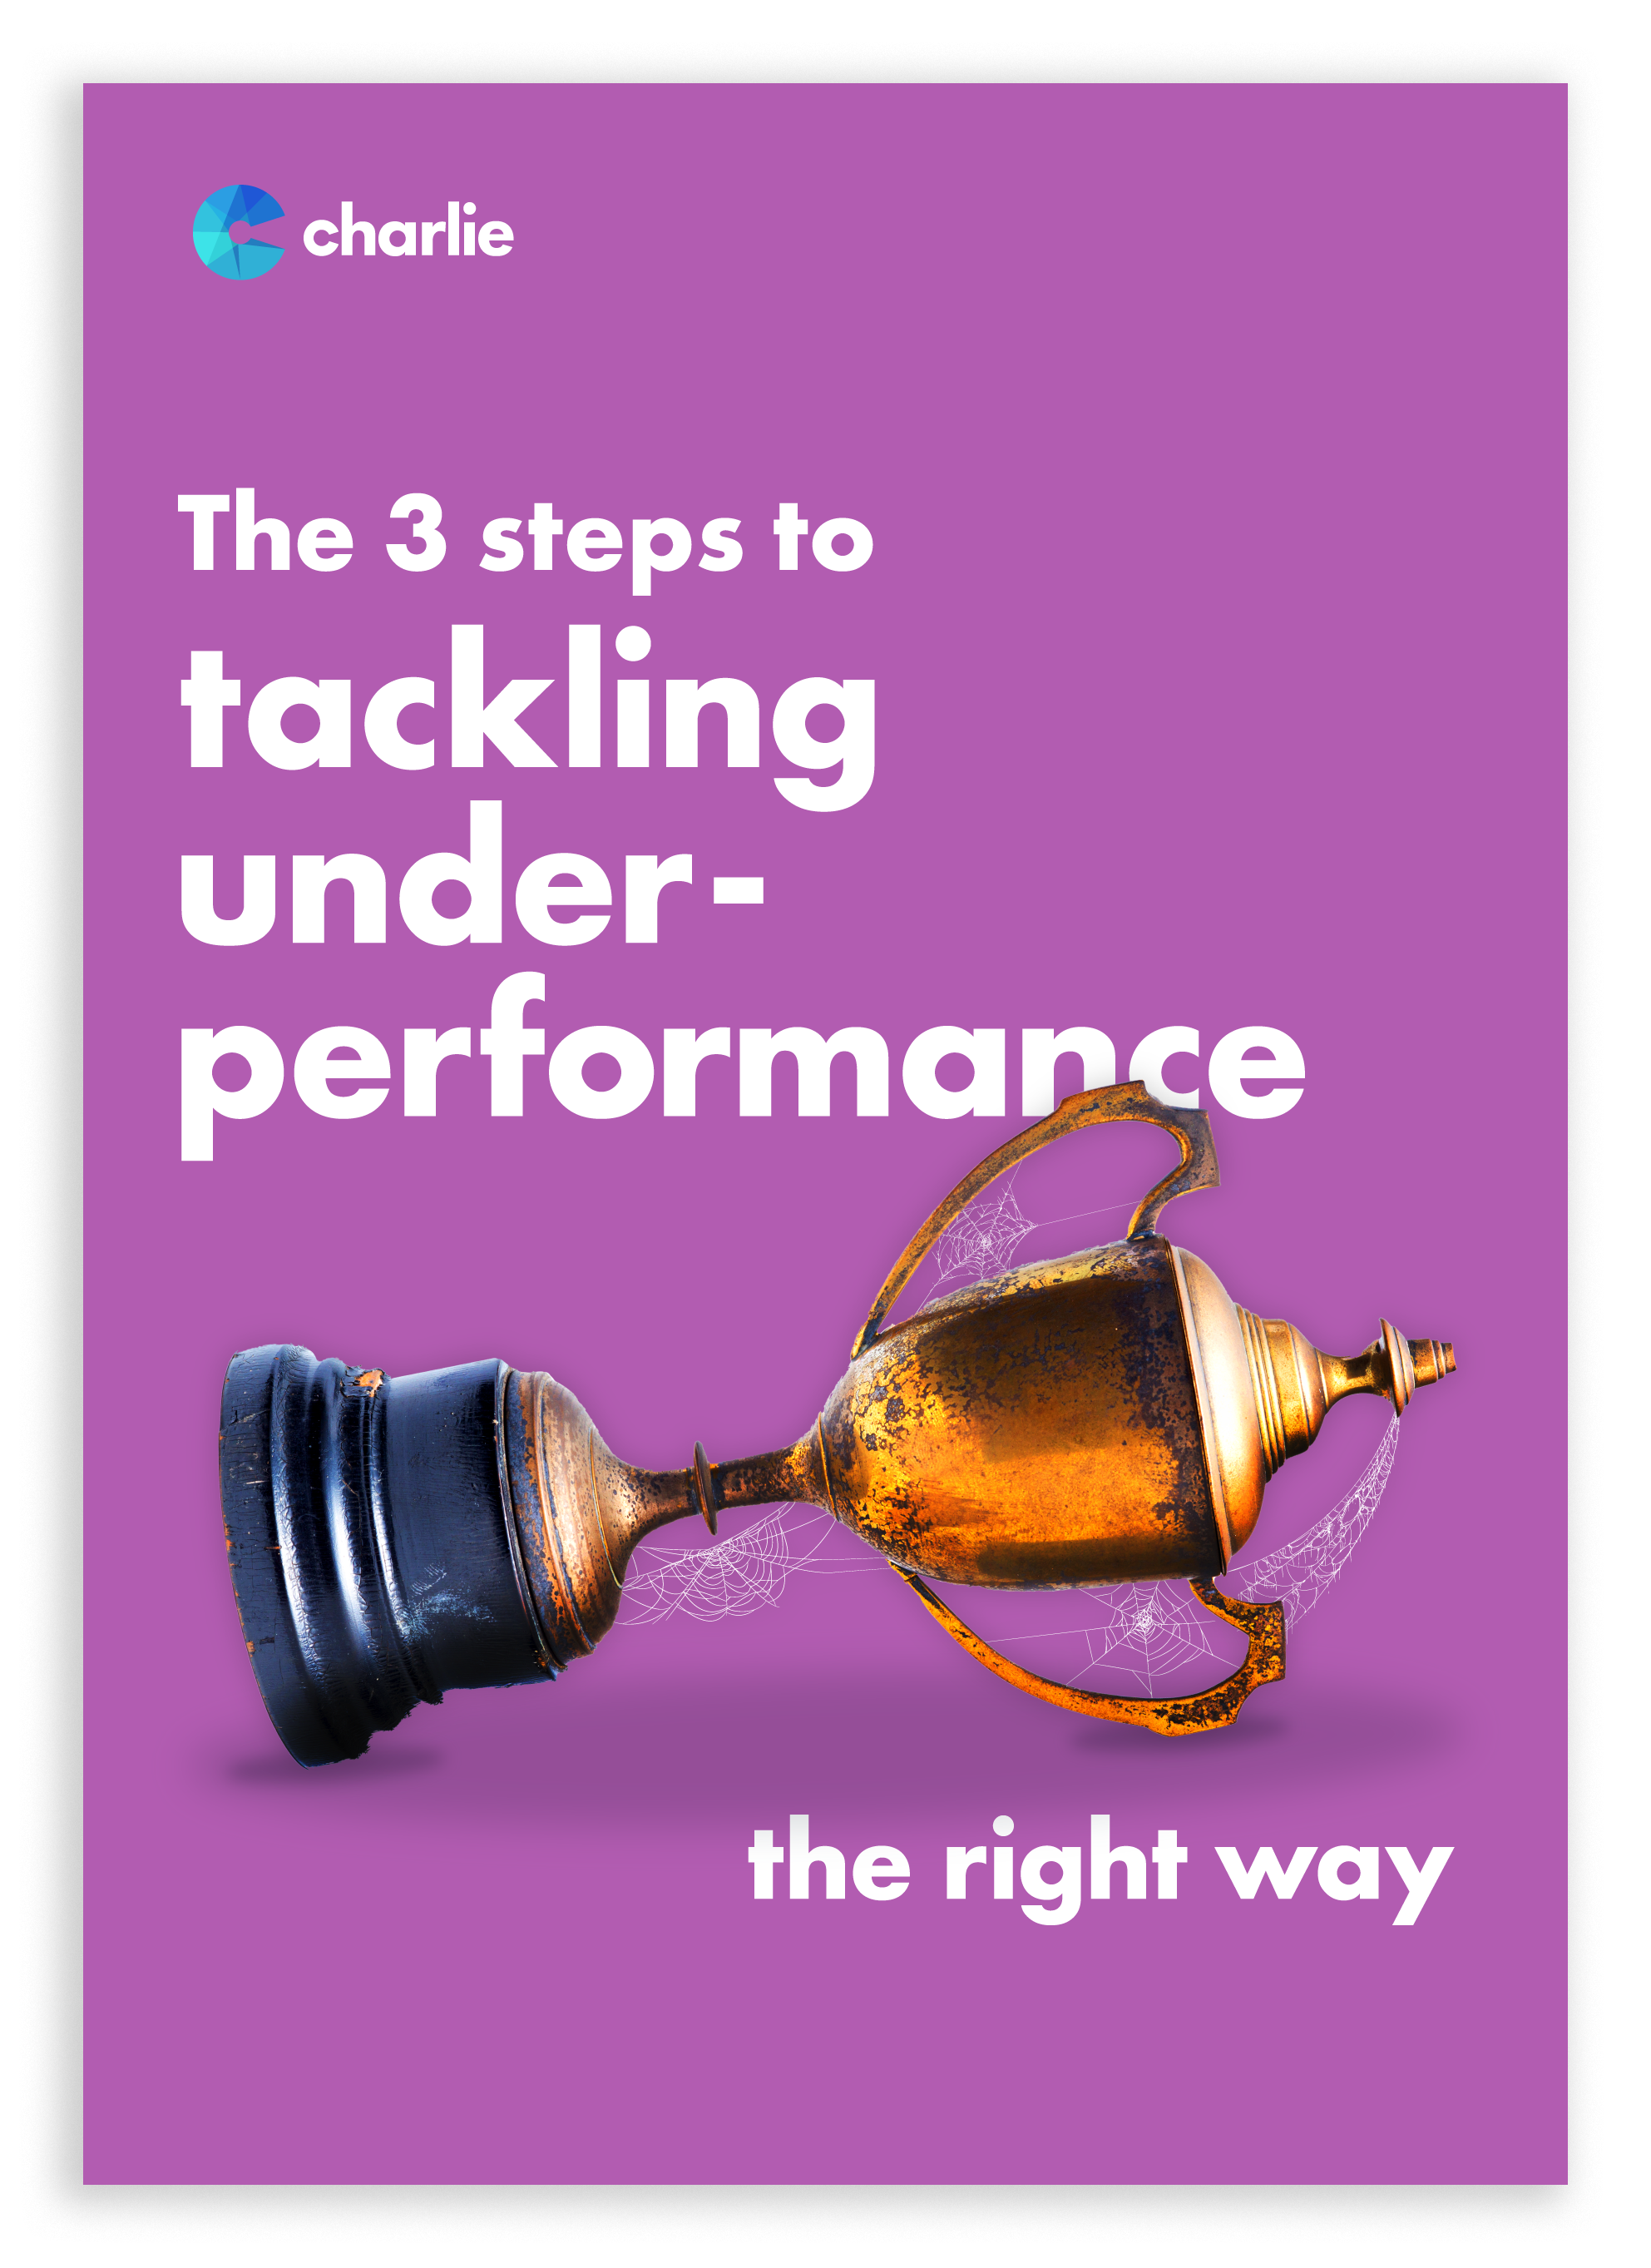 The-3-steps-to-tackling-underperformance-—-the-right-way-COVER-Landing-Page